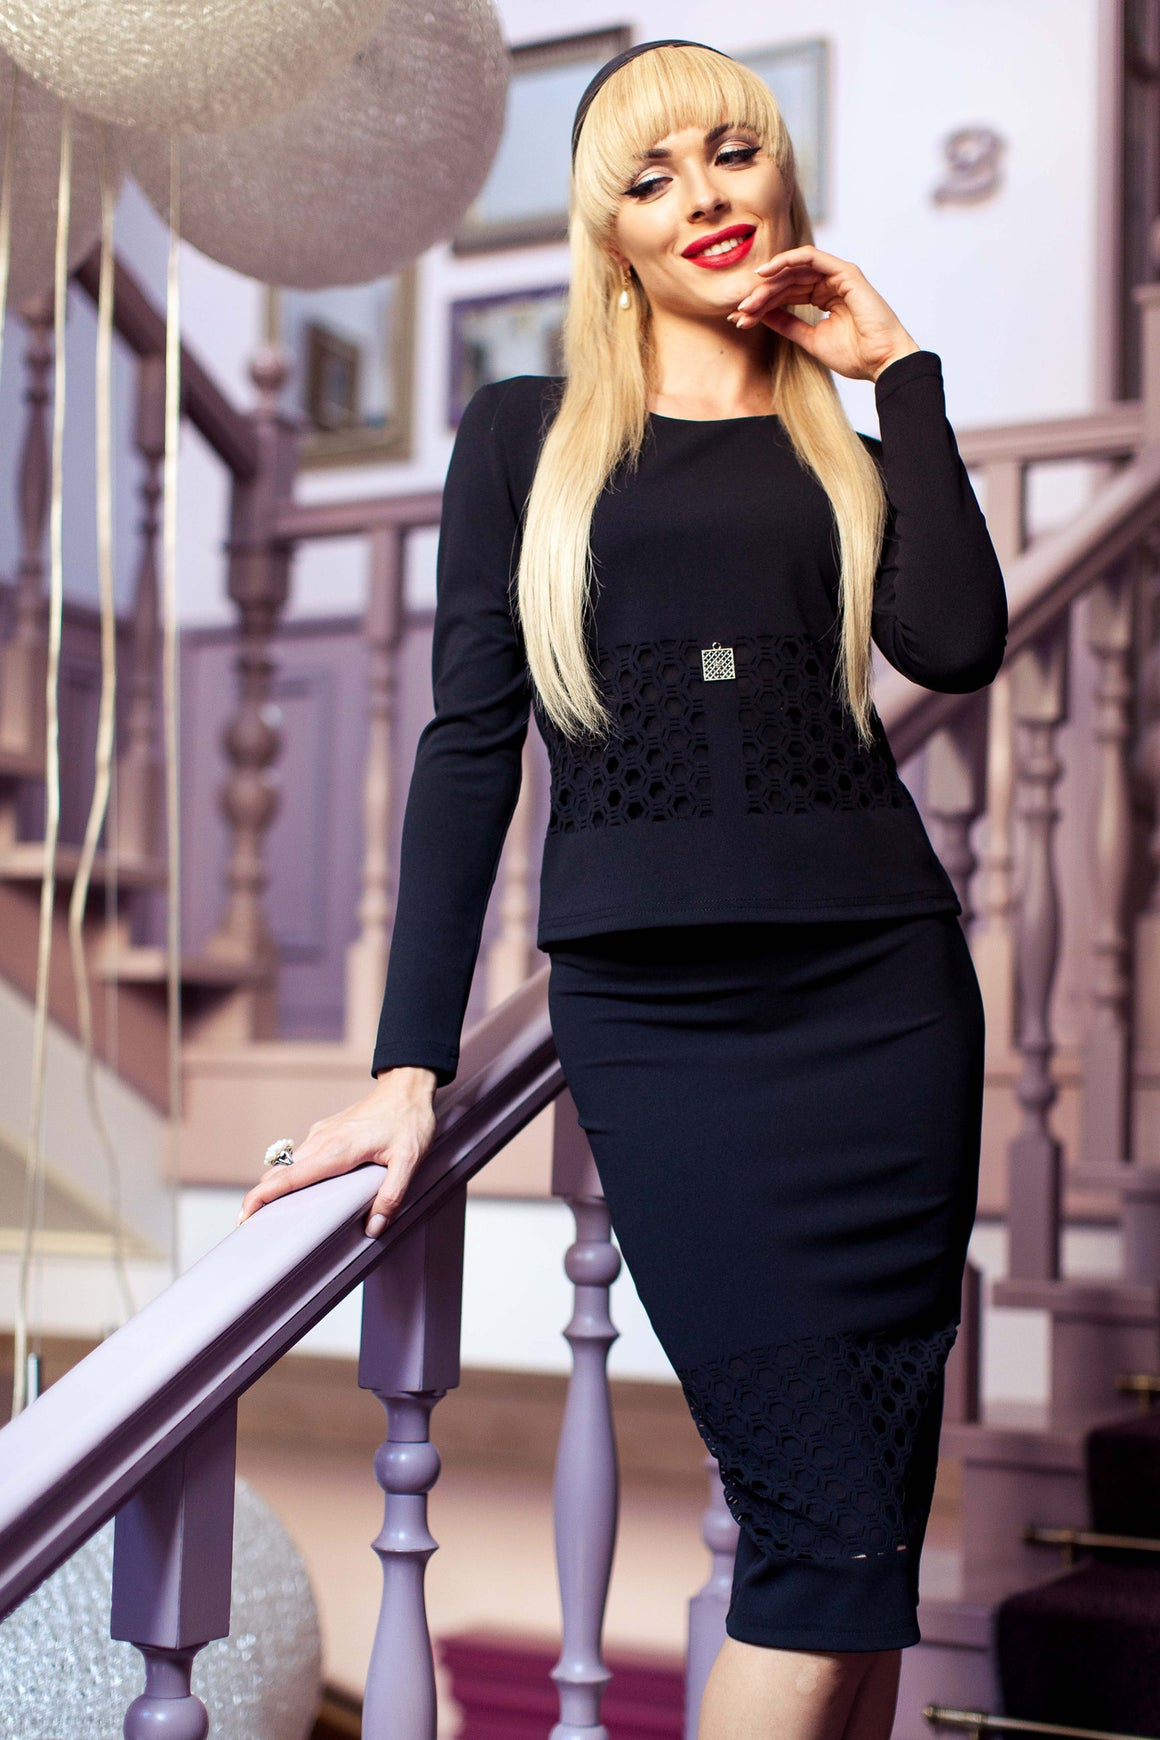 Black Comfortable Two Piece Business Dress Skirt Suit for Women with Pencil Skirt - Kollekcio  - 1